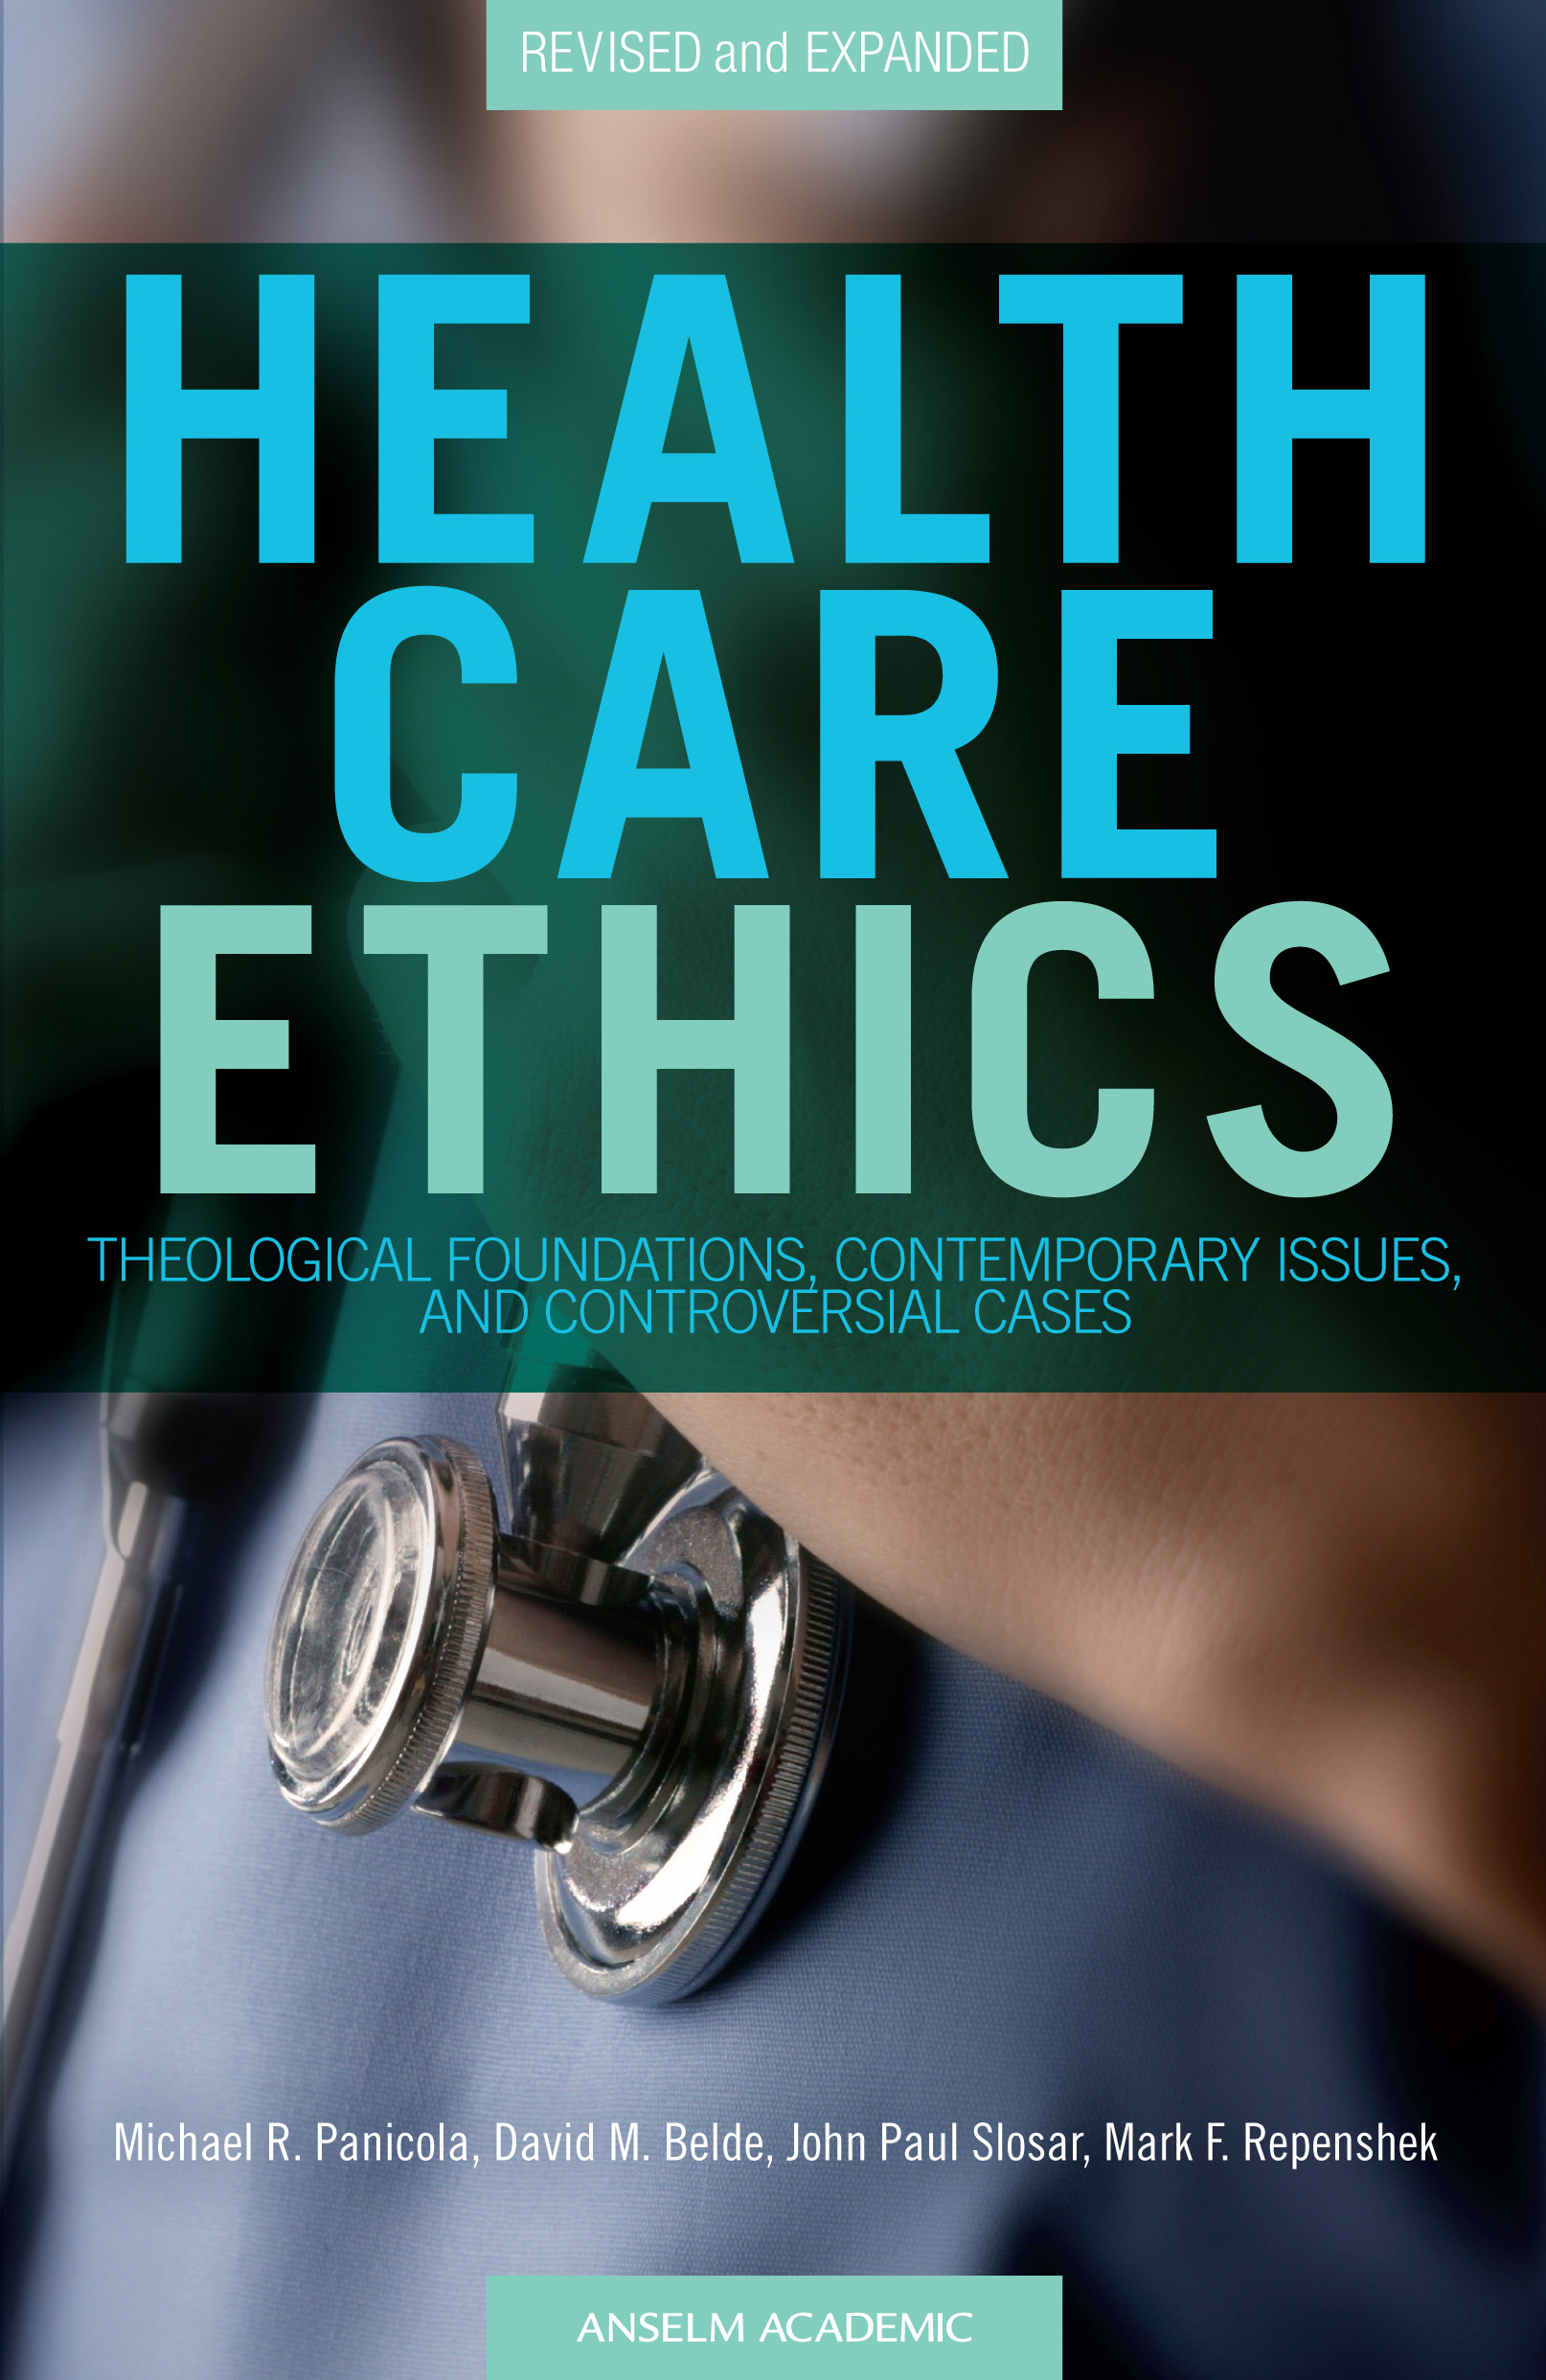 Health Care Ethics, Revised Edition: Theological Foundations, Contemporary Issues, and Controversial Cases